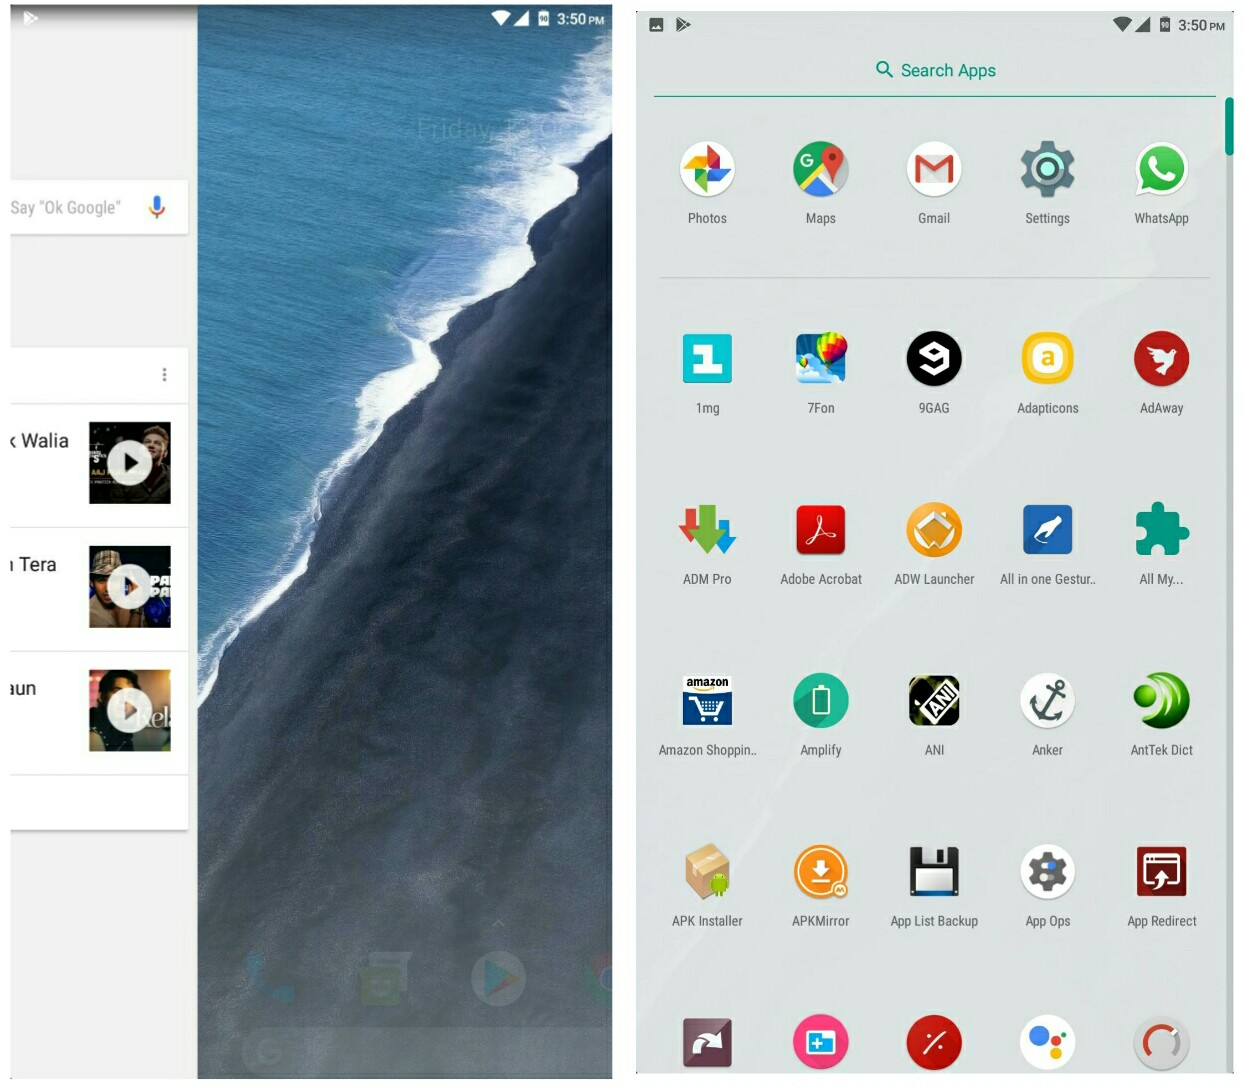 Download Google Pixel 2 Launcher APK On Your Android Phone